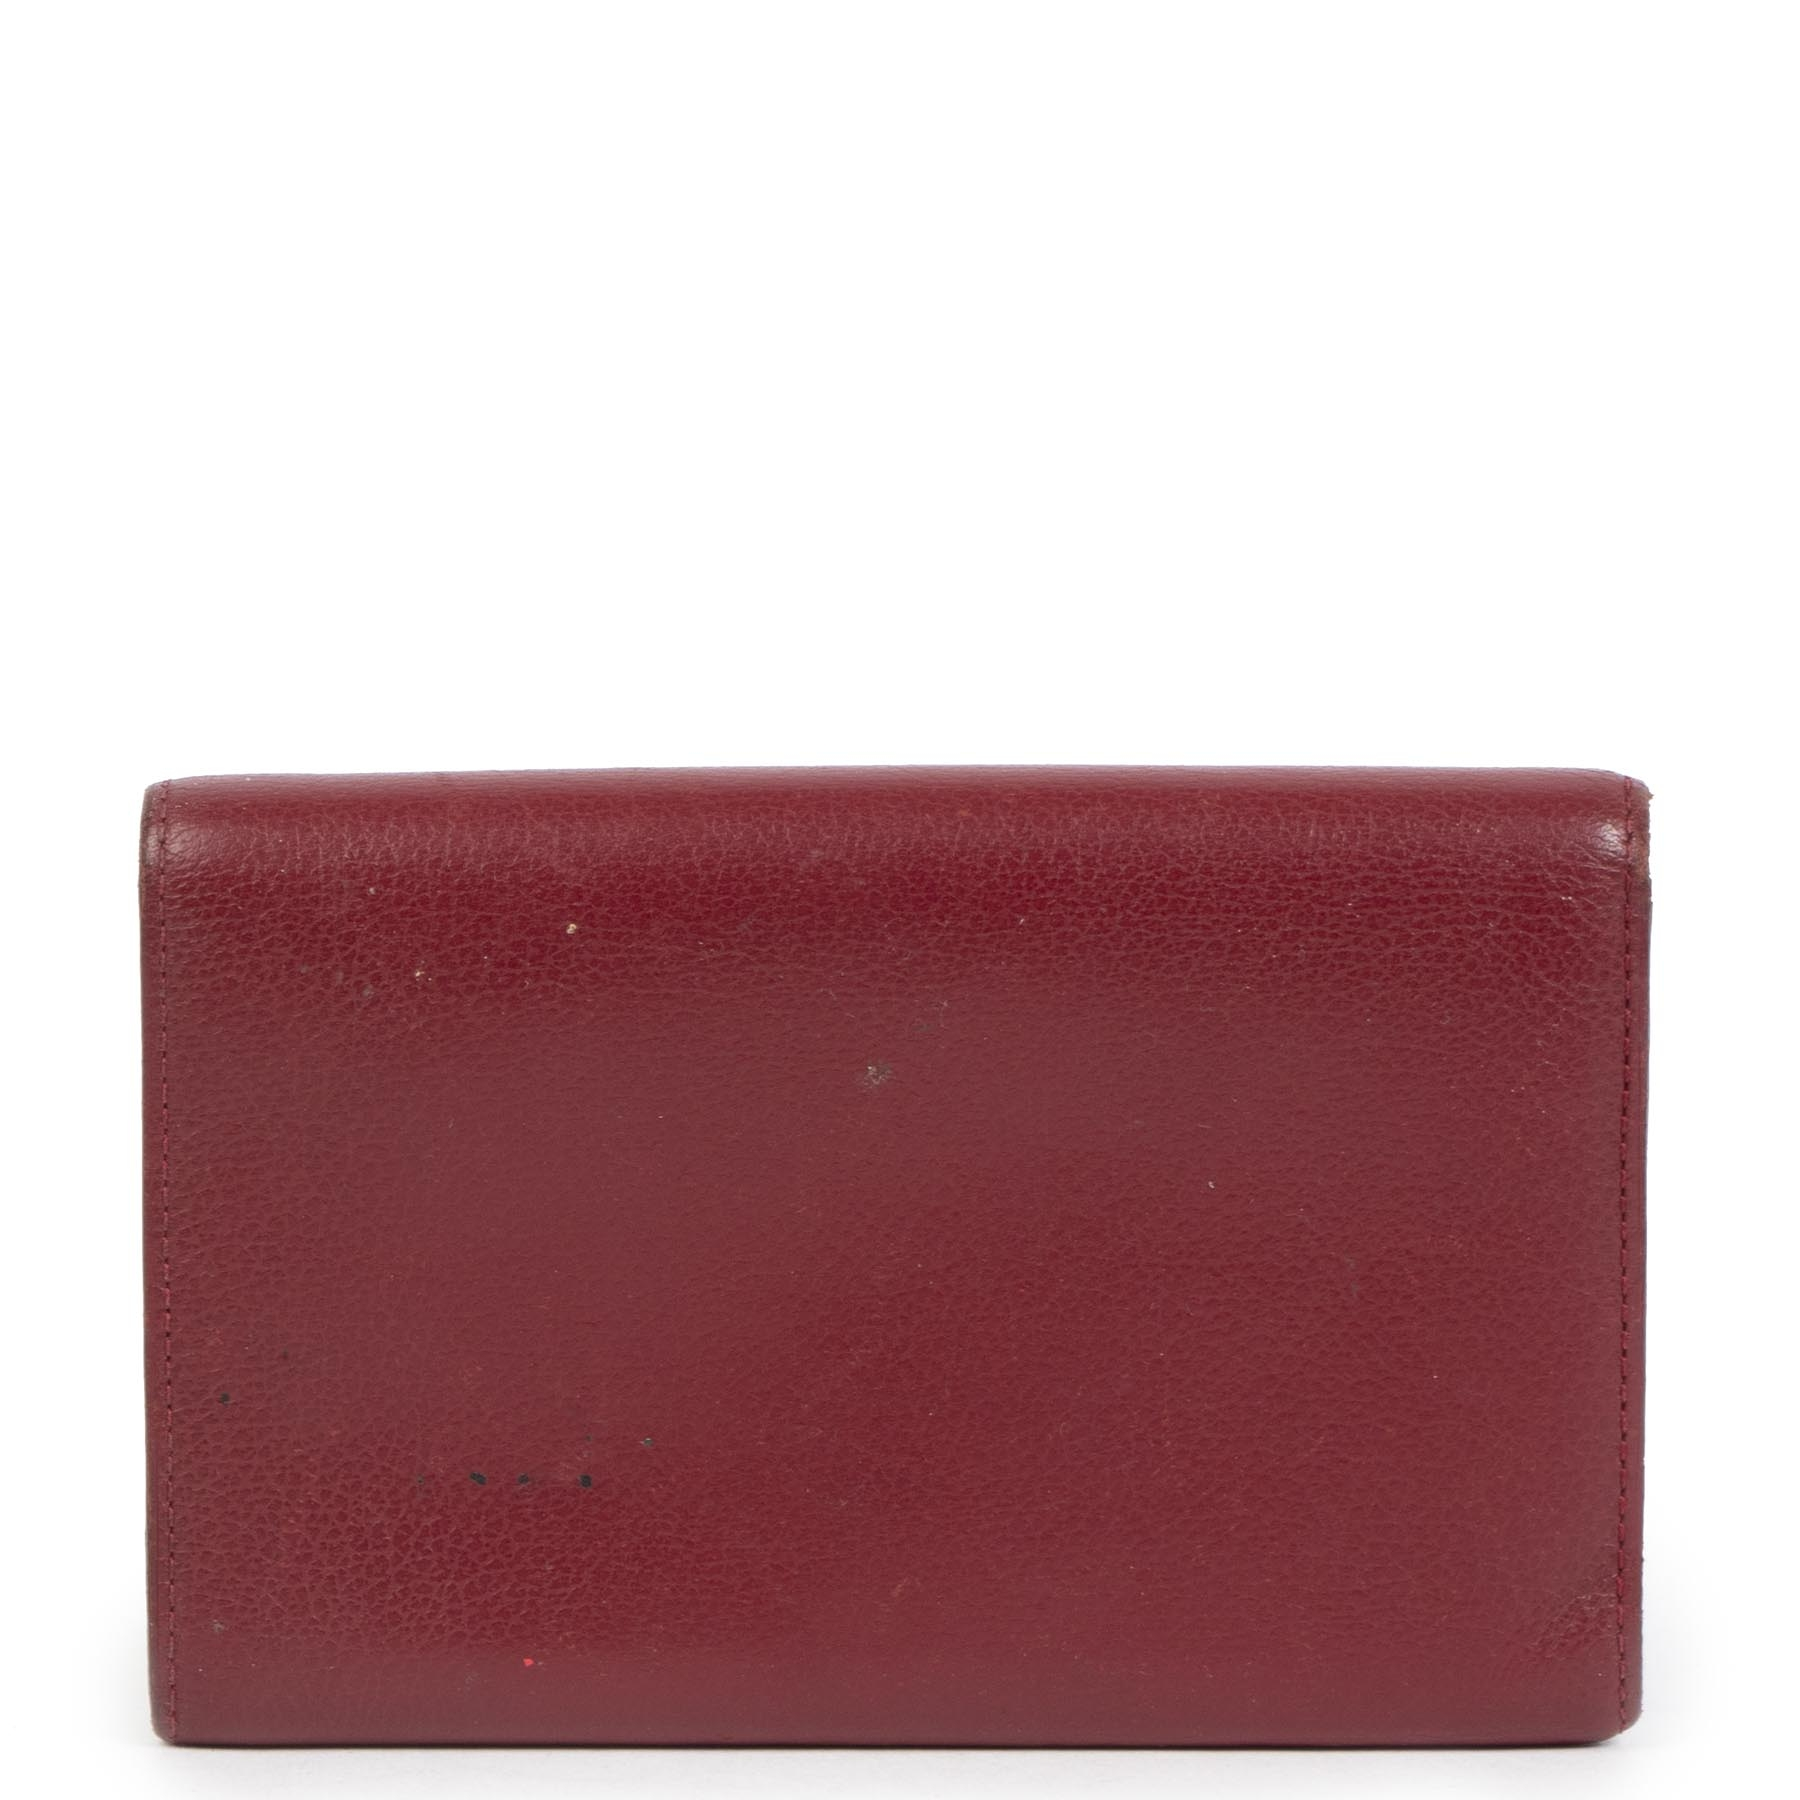 Authentic second-hand vintage Delvaux Burgundy Wallet buy online webshop LabelLOV